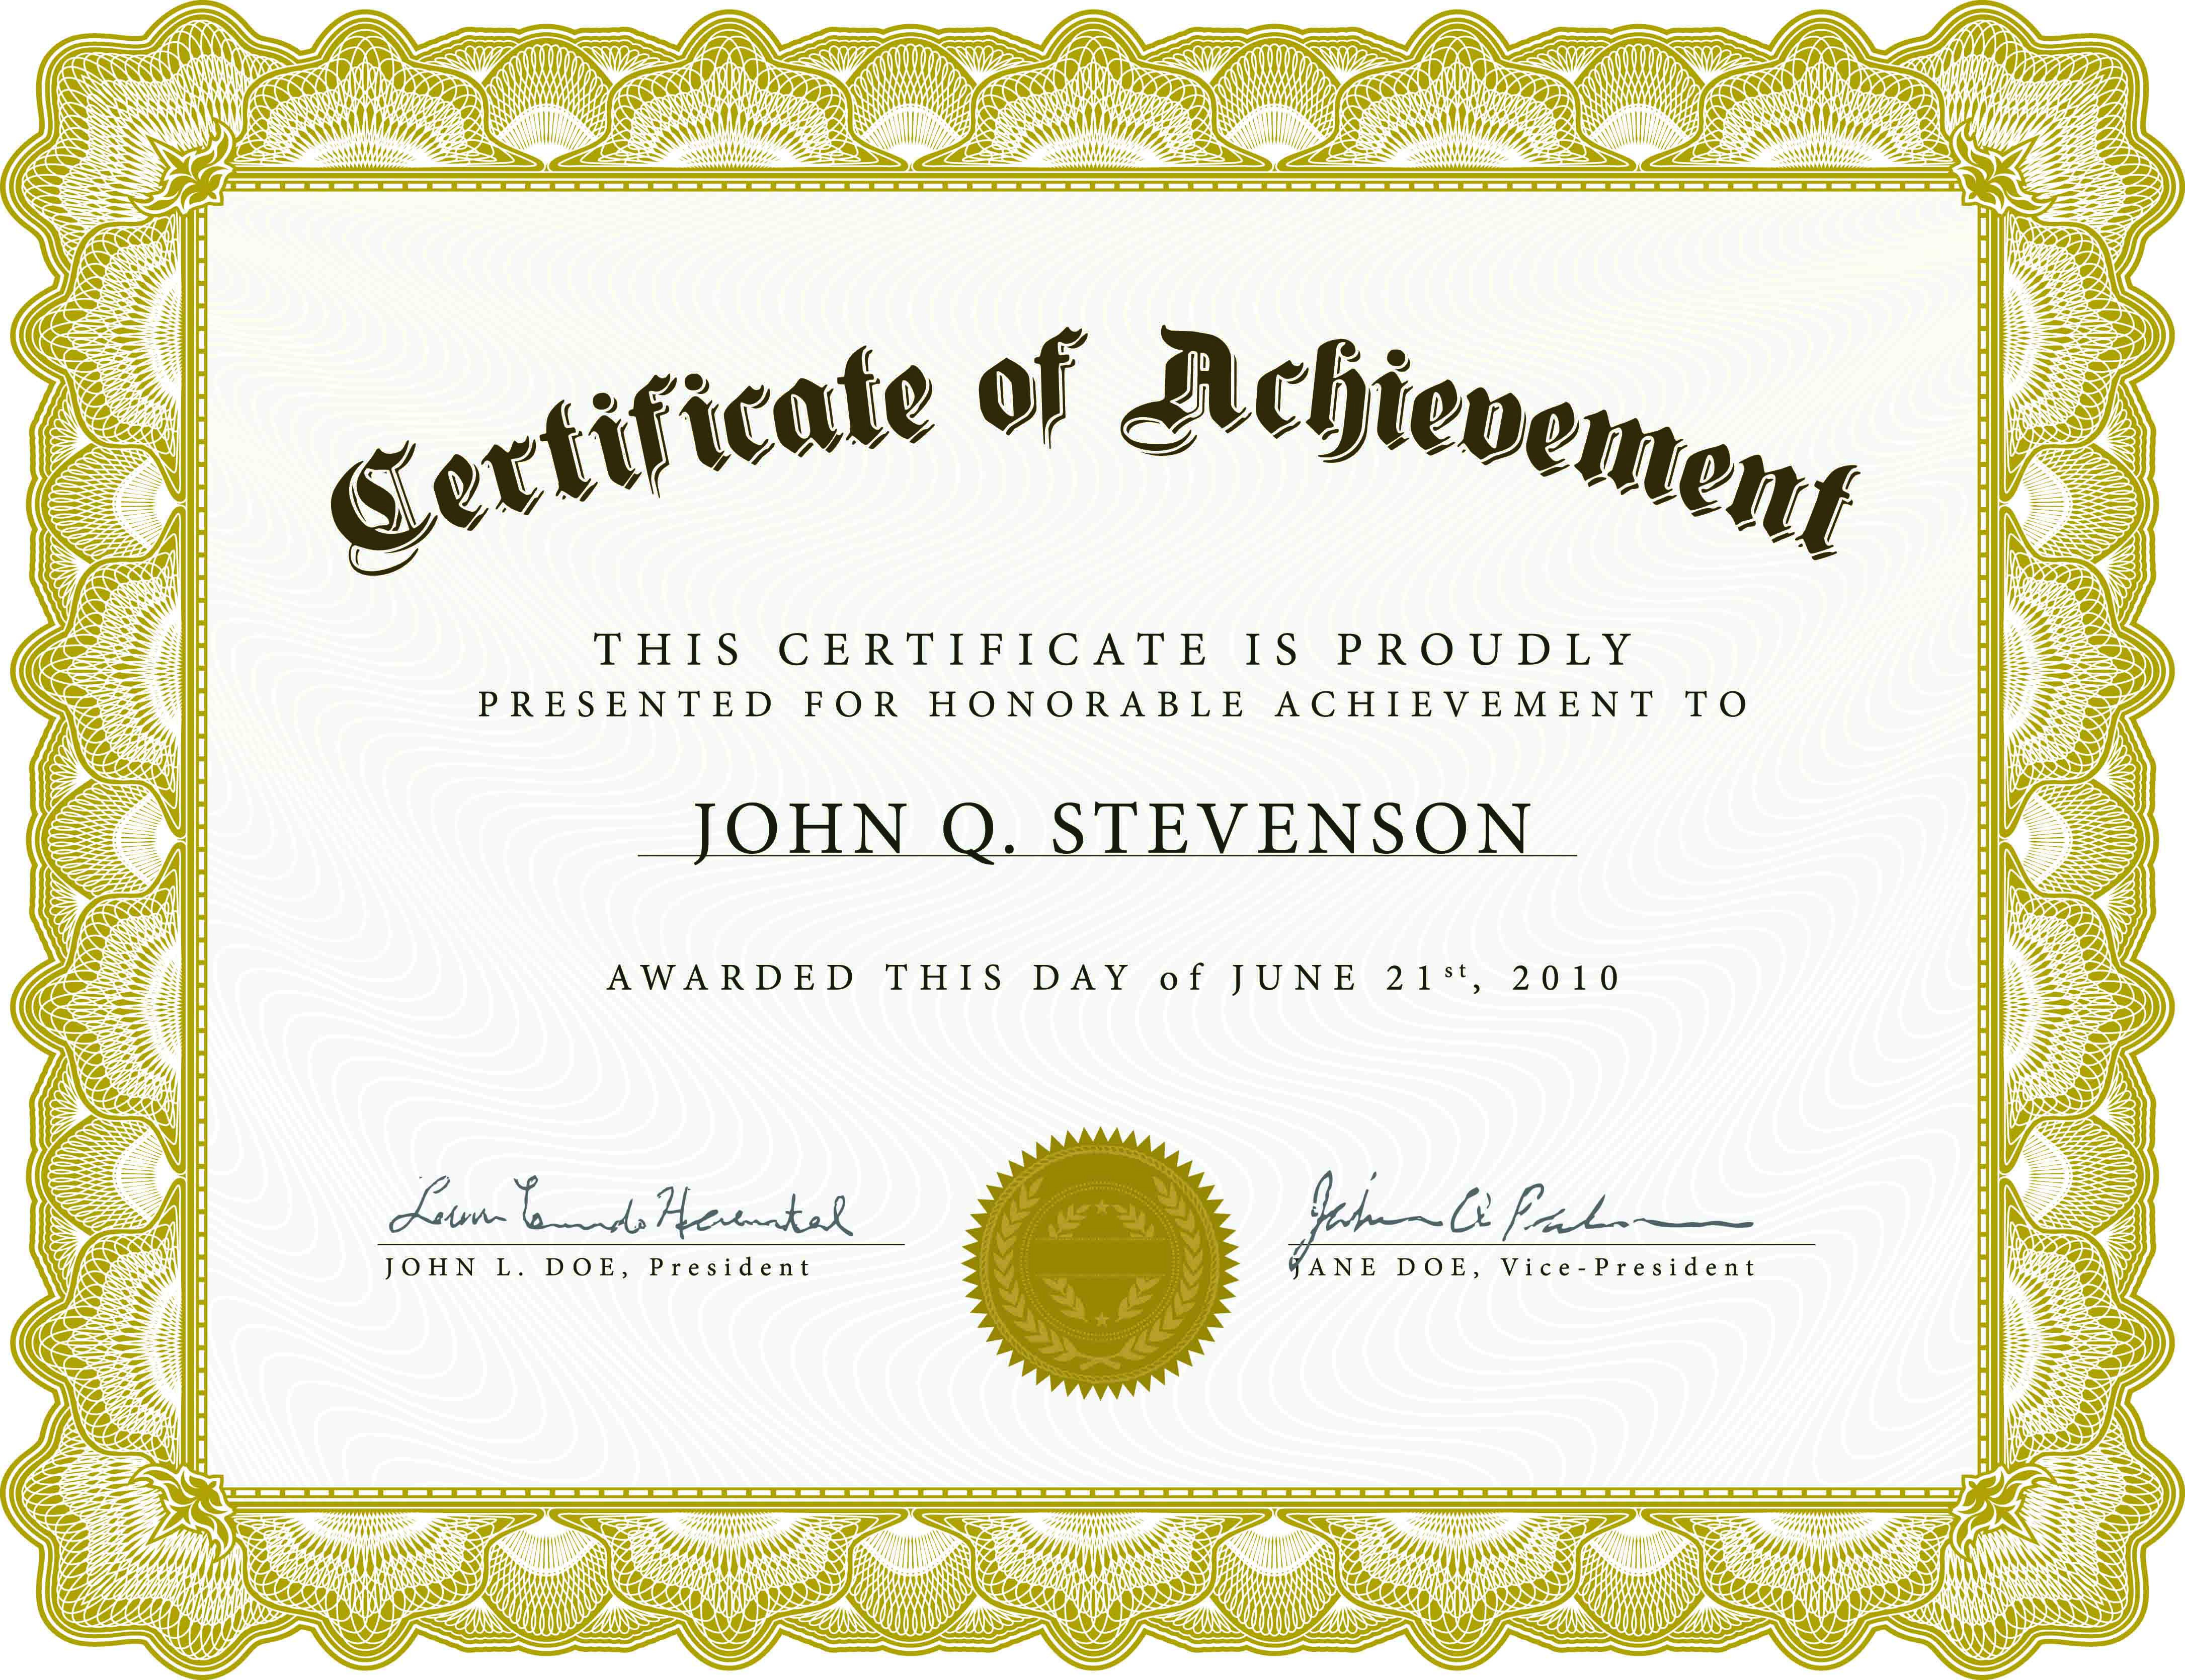 Download Blank Certificate Template X3Hr9Dto | St. Gabriel's Youth - Free Printable Certificate Templates